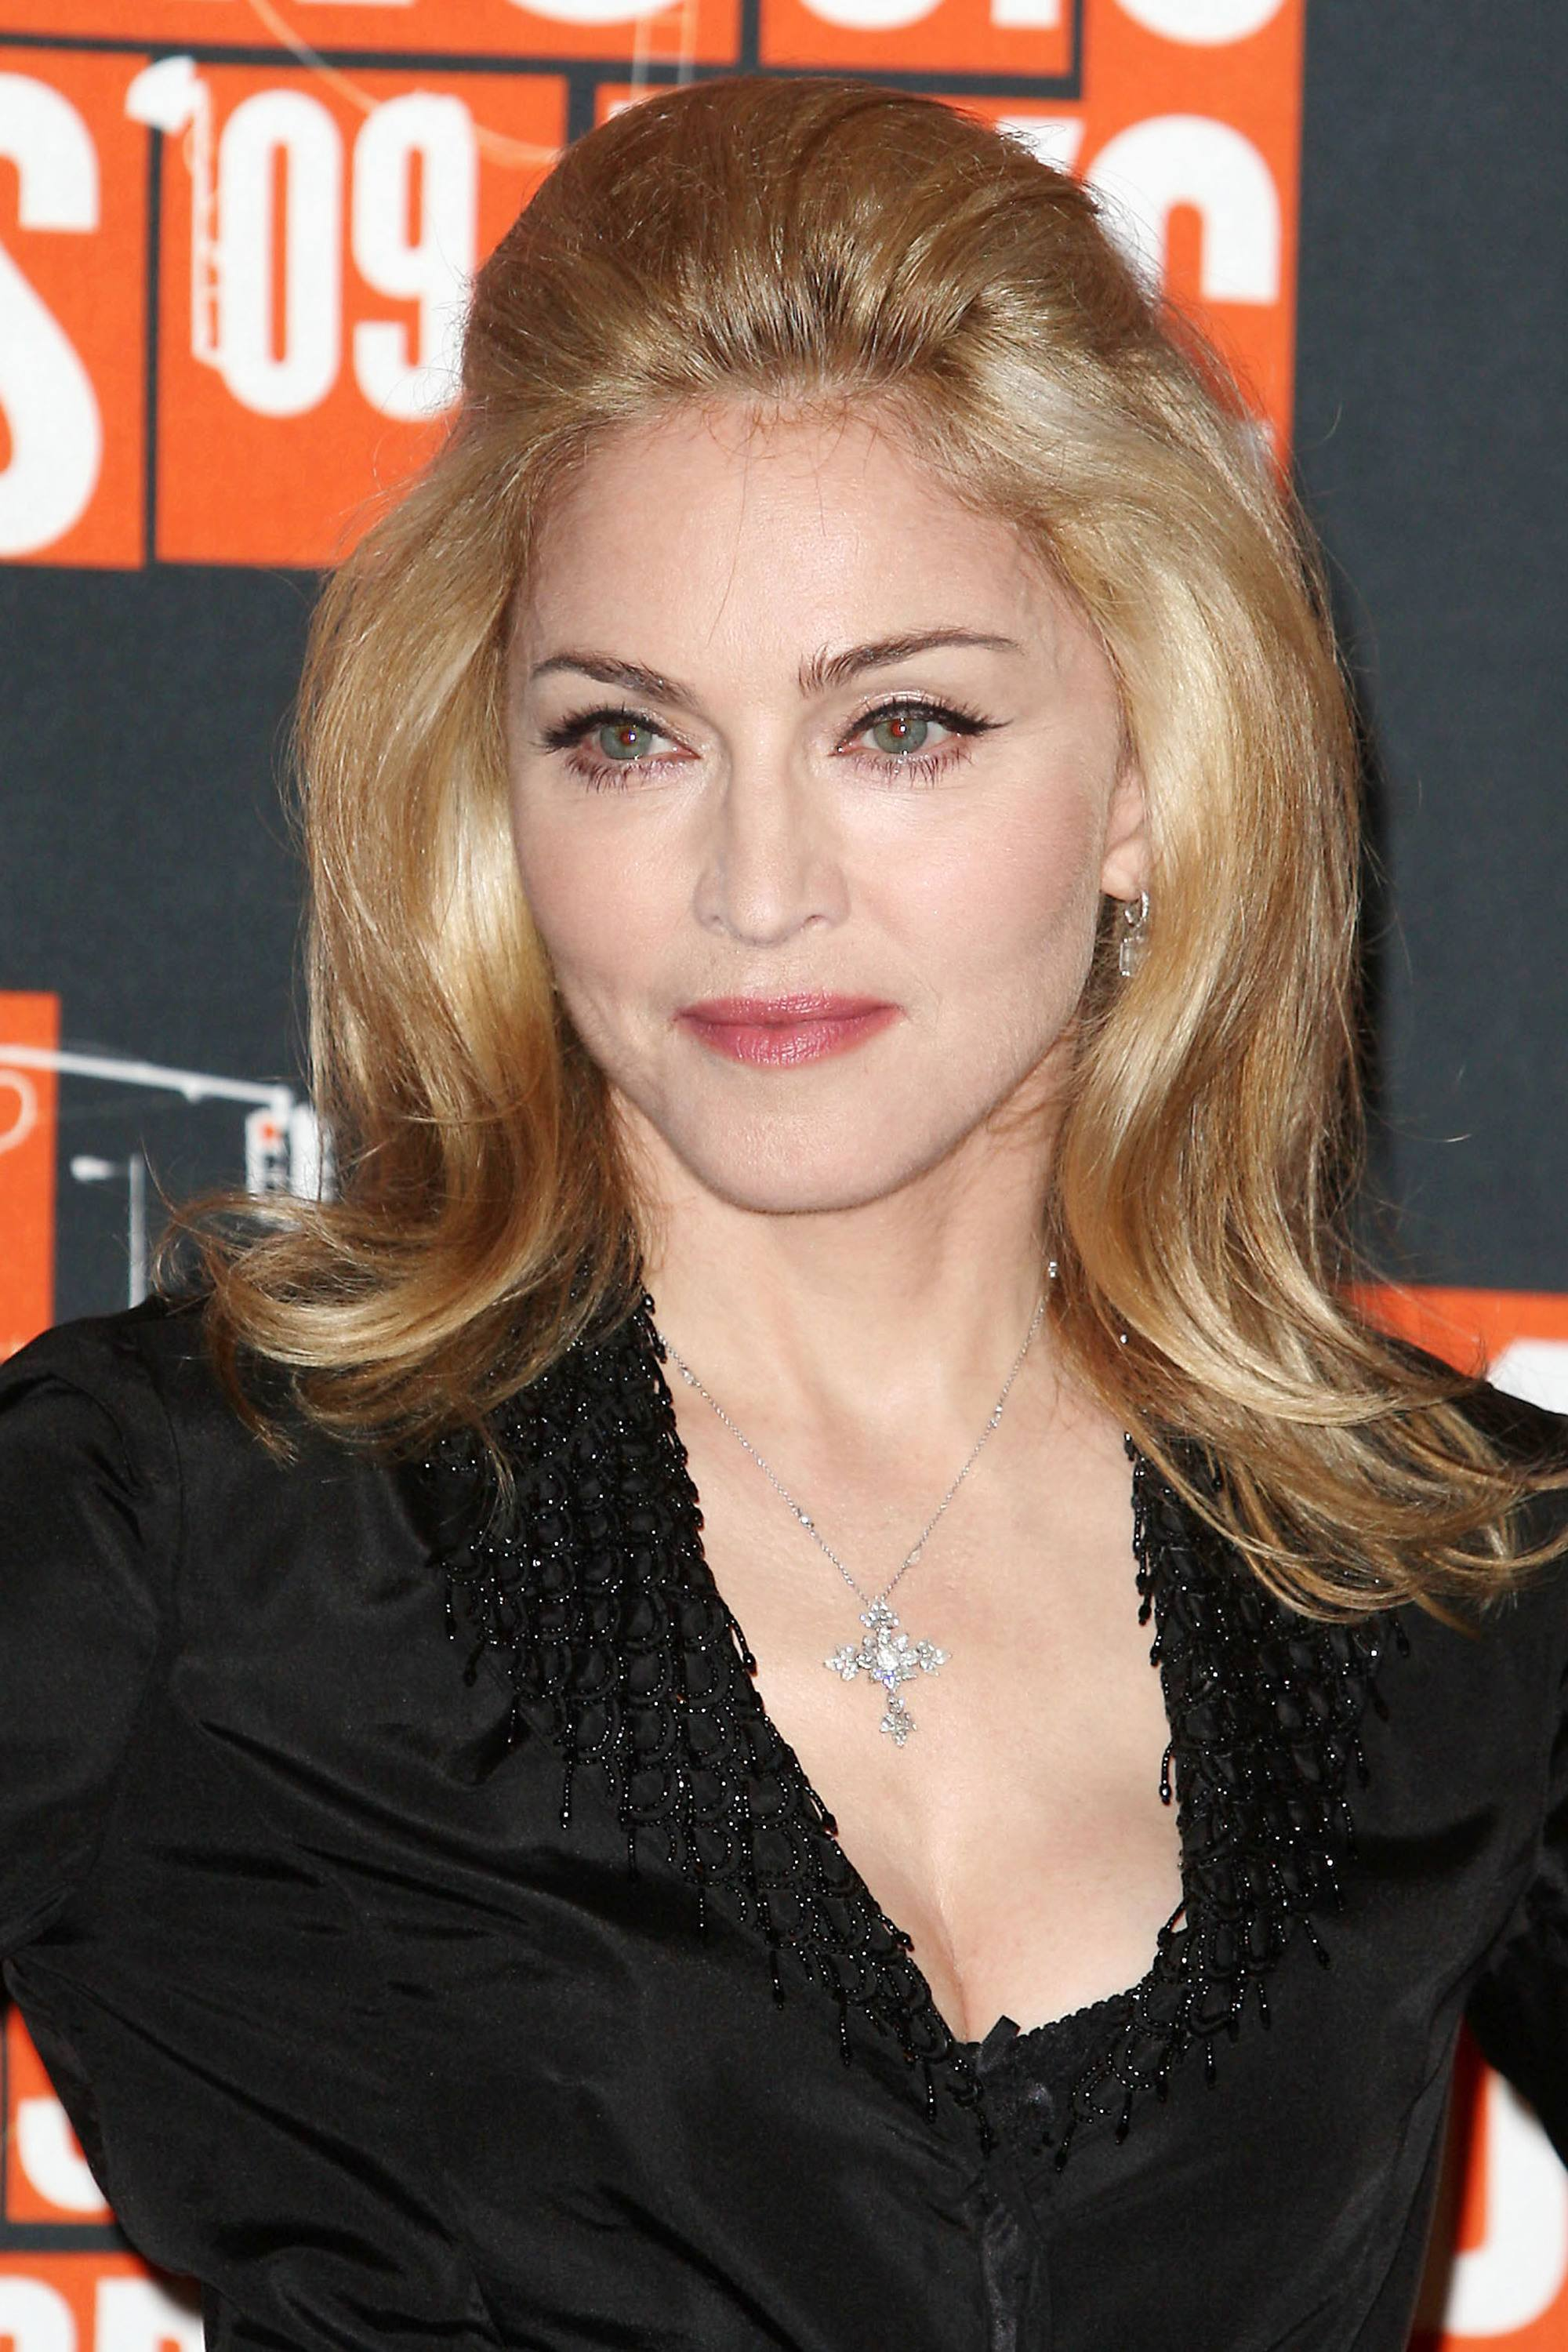 Madonna in 2009 with her honey blonde hair in a retro looking bouffant style wearing a black detailed dress